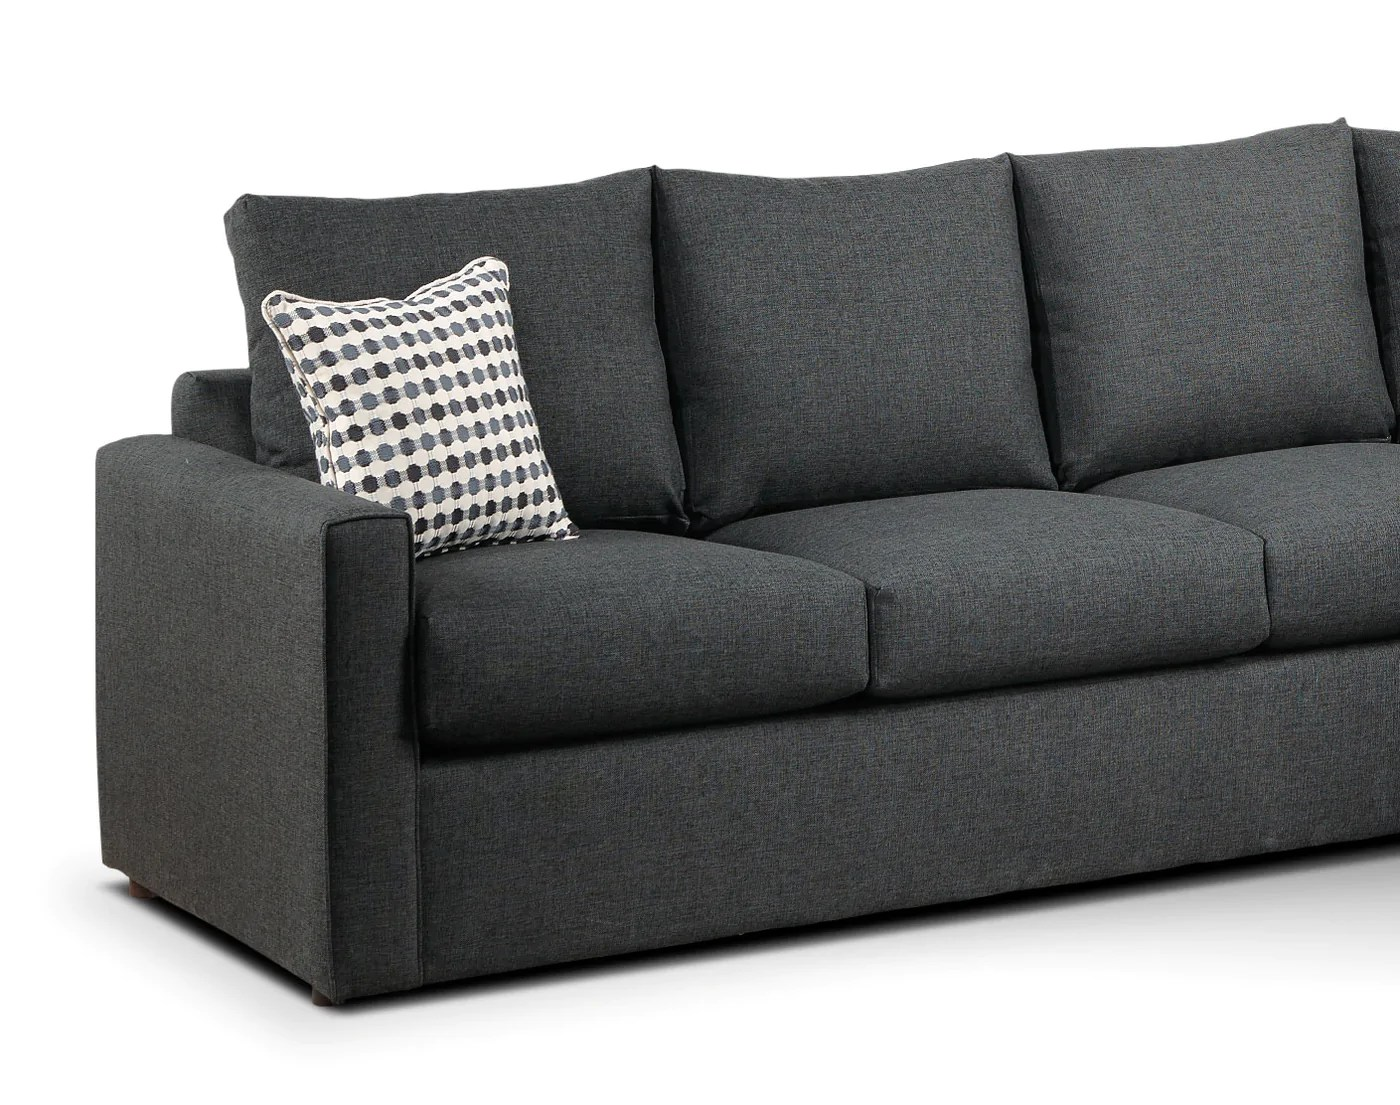 Sofa Bed For Sale Toronto Athina 2 Piece Sectional With Left Facing Queen Sofa Bed Charcoal